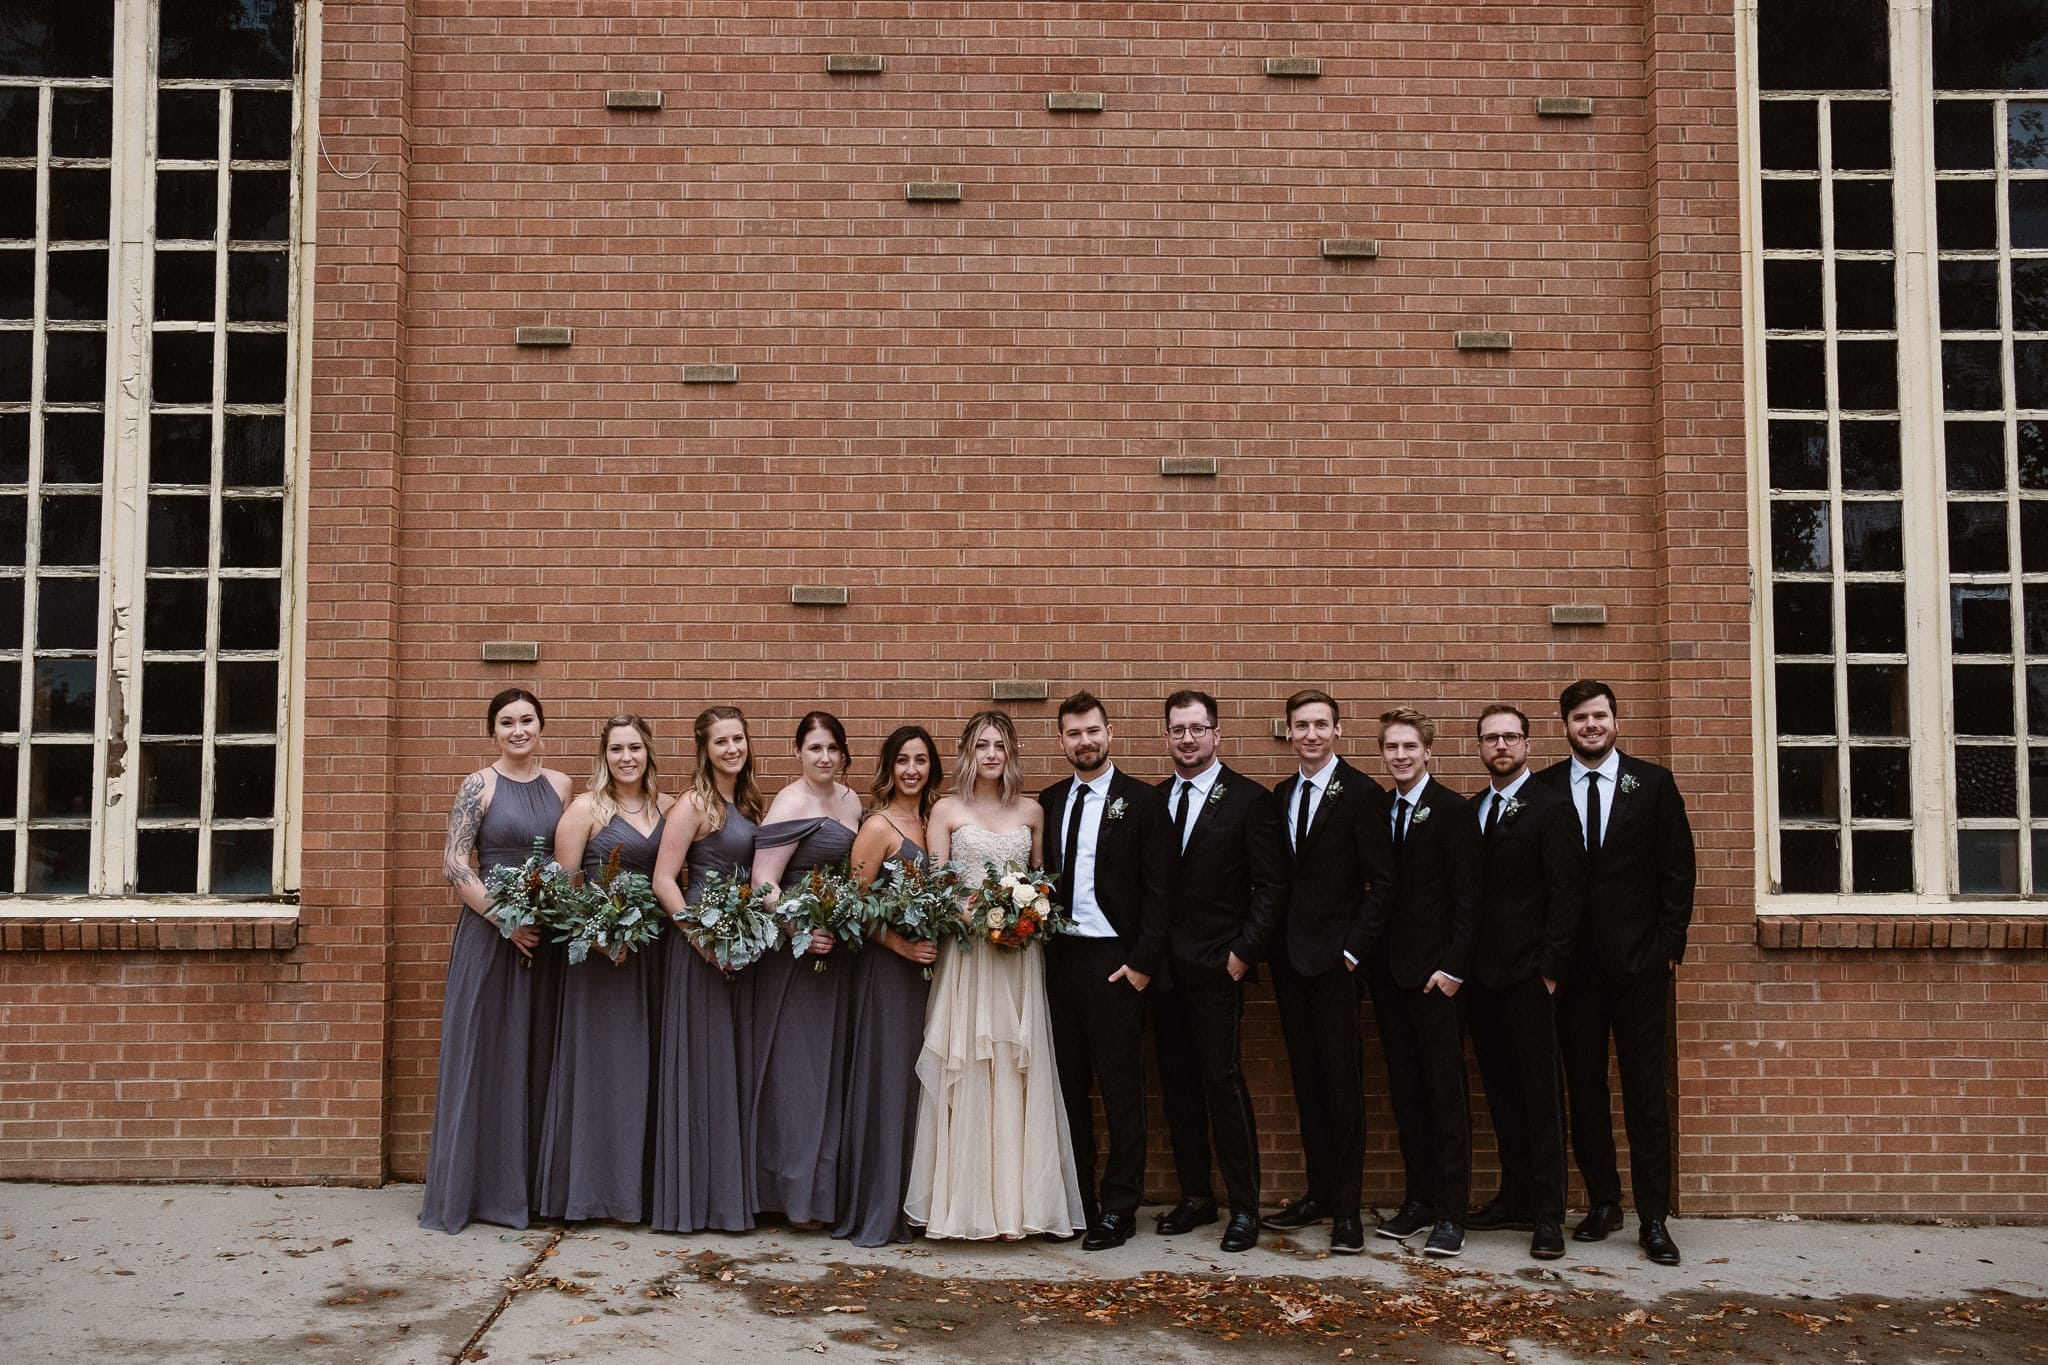 St Vrain Wedding Photographer | Longmont Wedding Photographer | Colorado Winter Wedding Photographer, Colorado industrial chic wedding, bride and groom with wedding party, dark gray bridesmaid dresses, black suits and black skinny ties